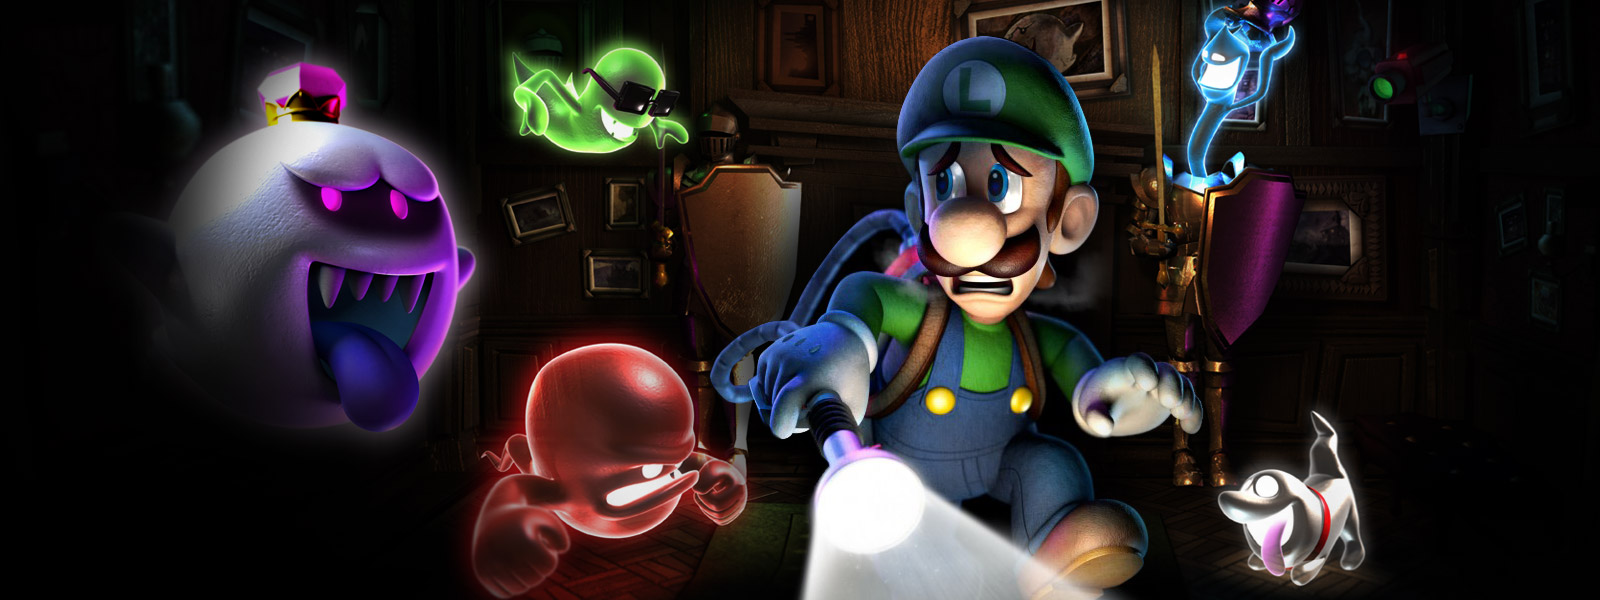 Modojo | Scare Up Some Fun With A Return To Luigi's Mansion